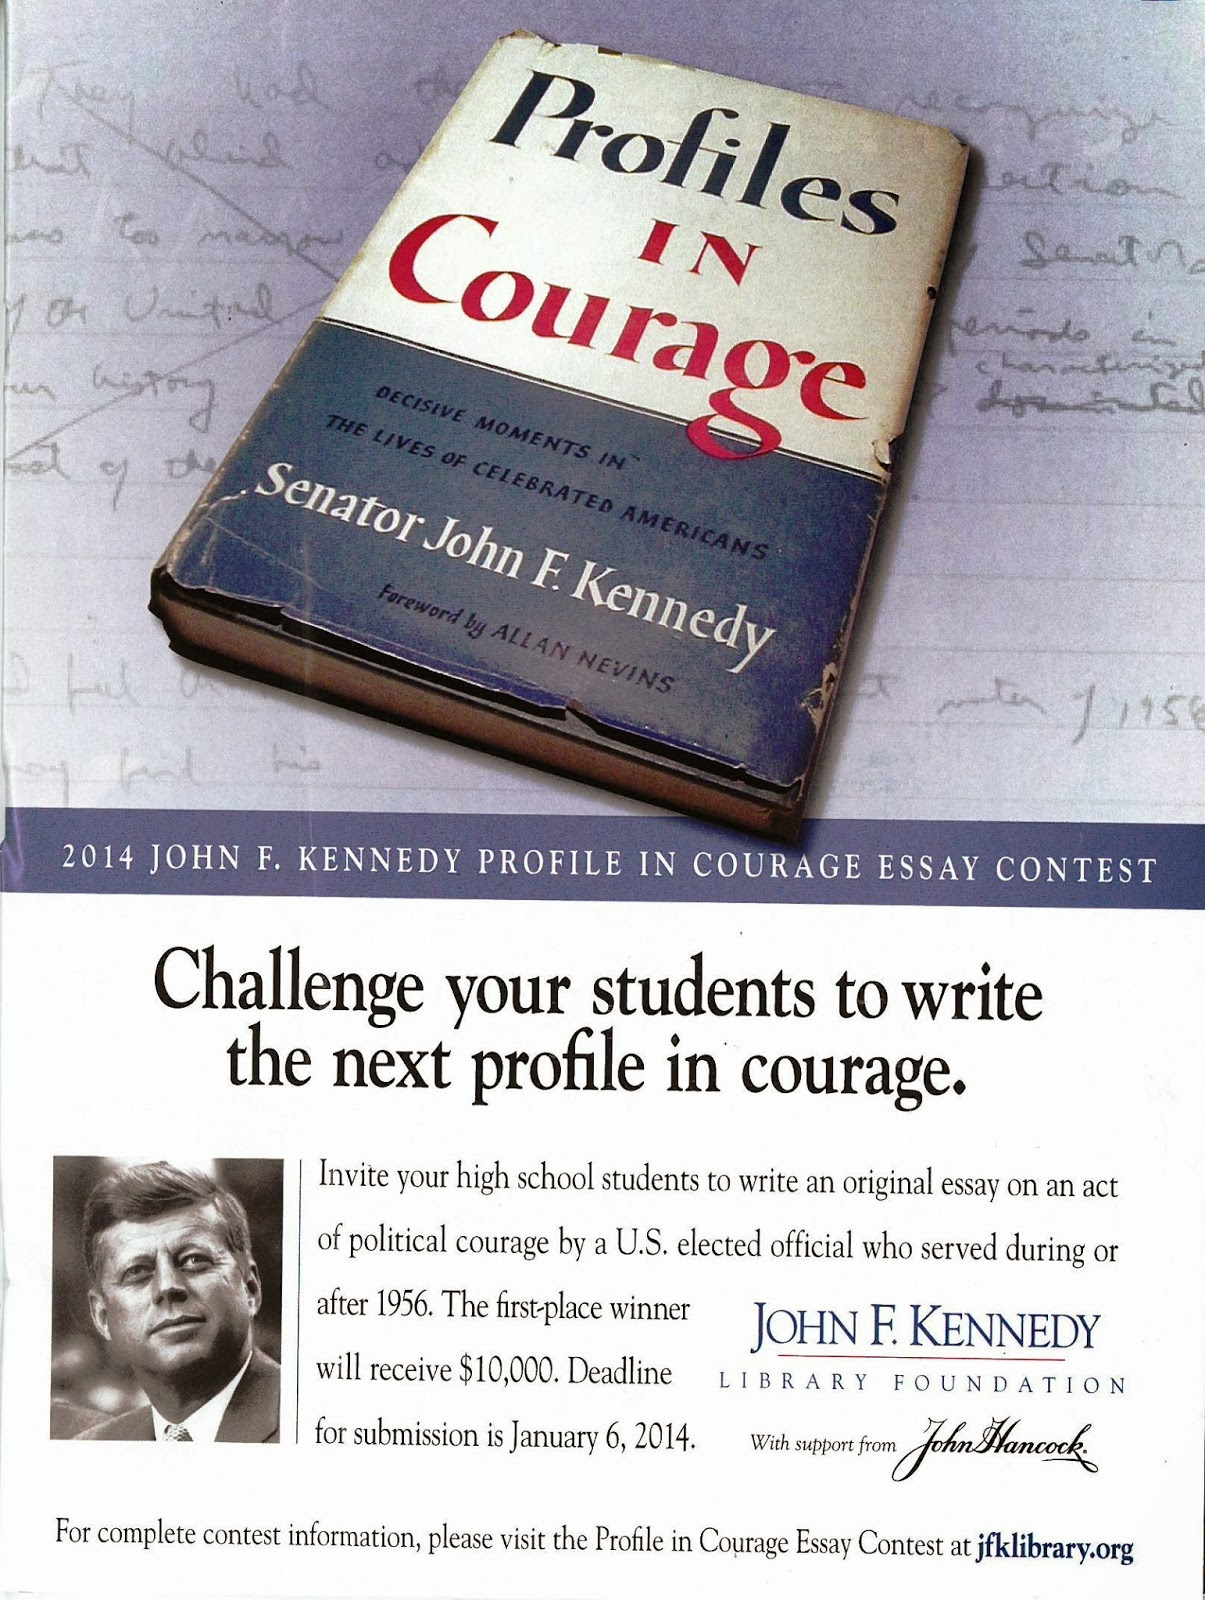 Profiles in courage essay contest past winners